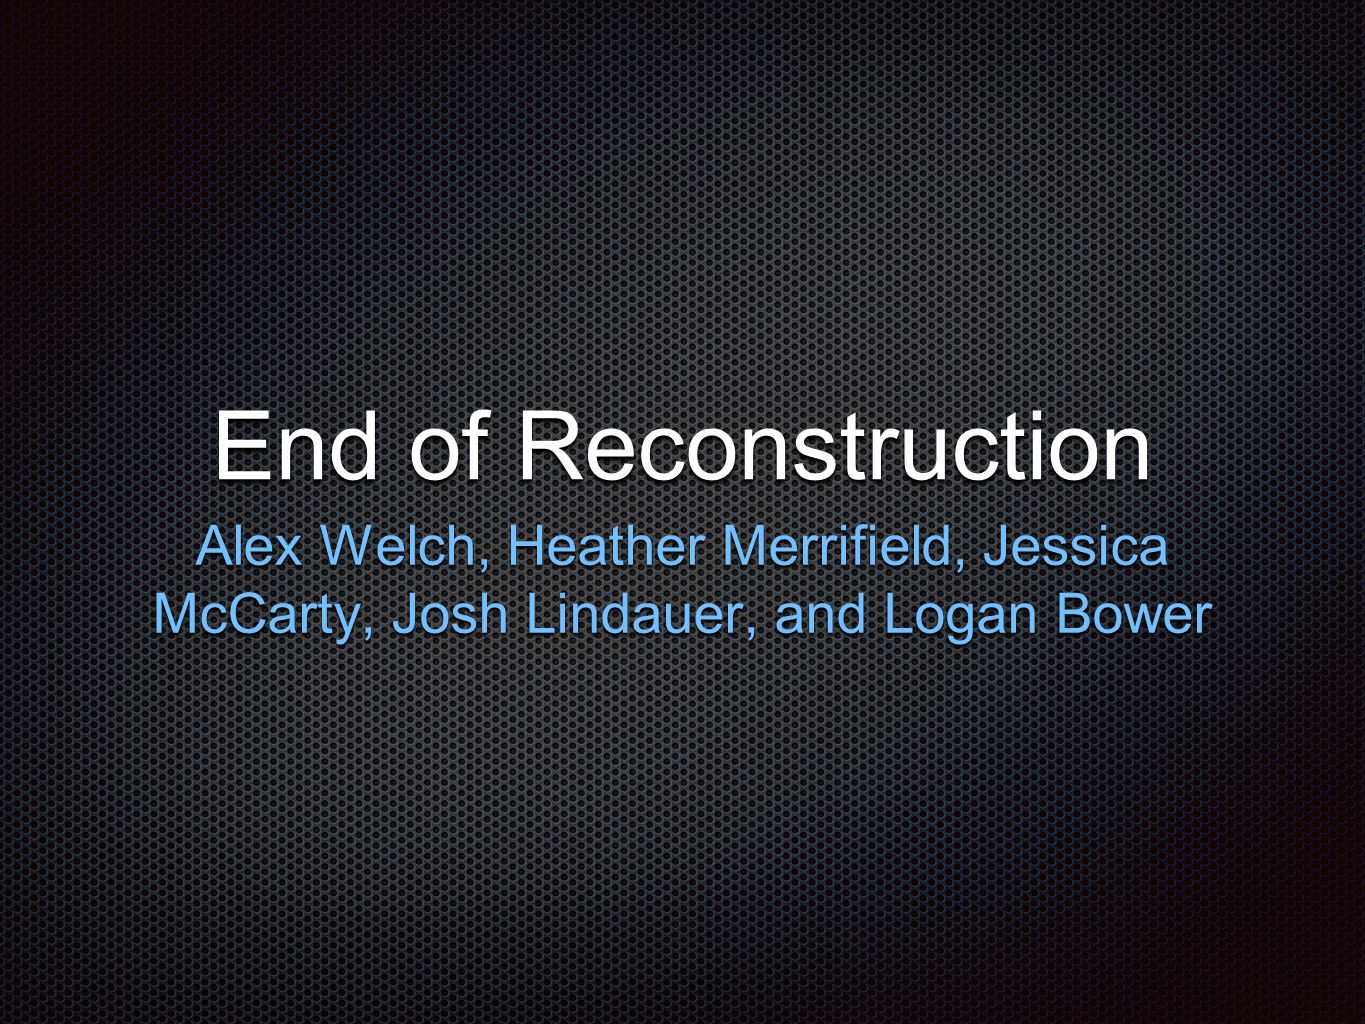 End of Reconstruction Alex Welch, Heather Merrifield, Jessica McCarty, Josh Lindauer, and Logan Bower